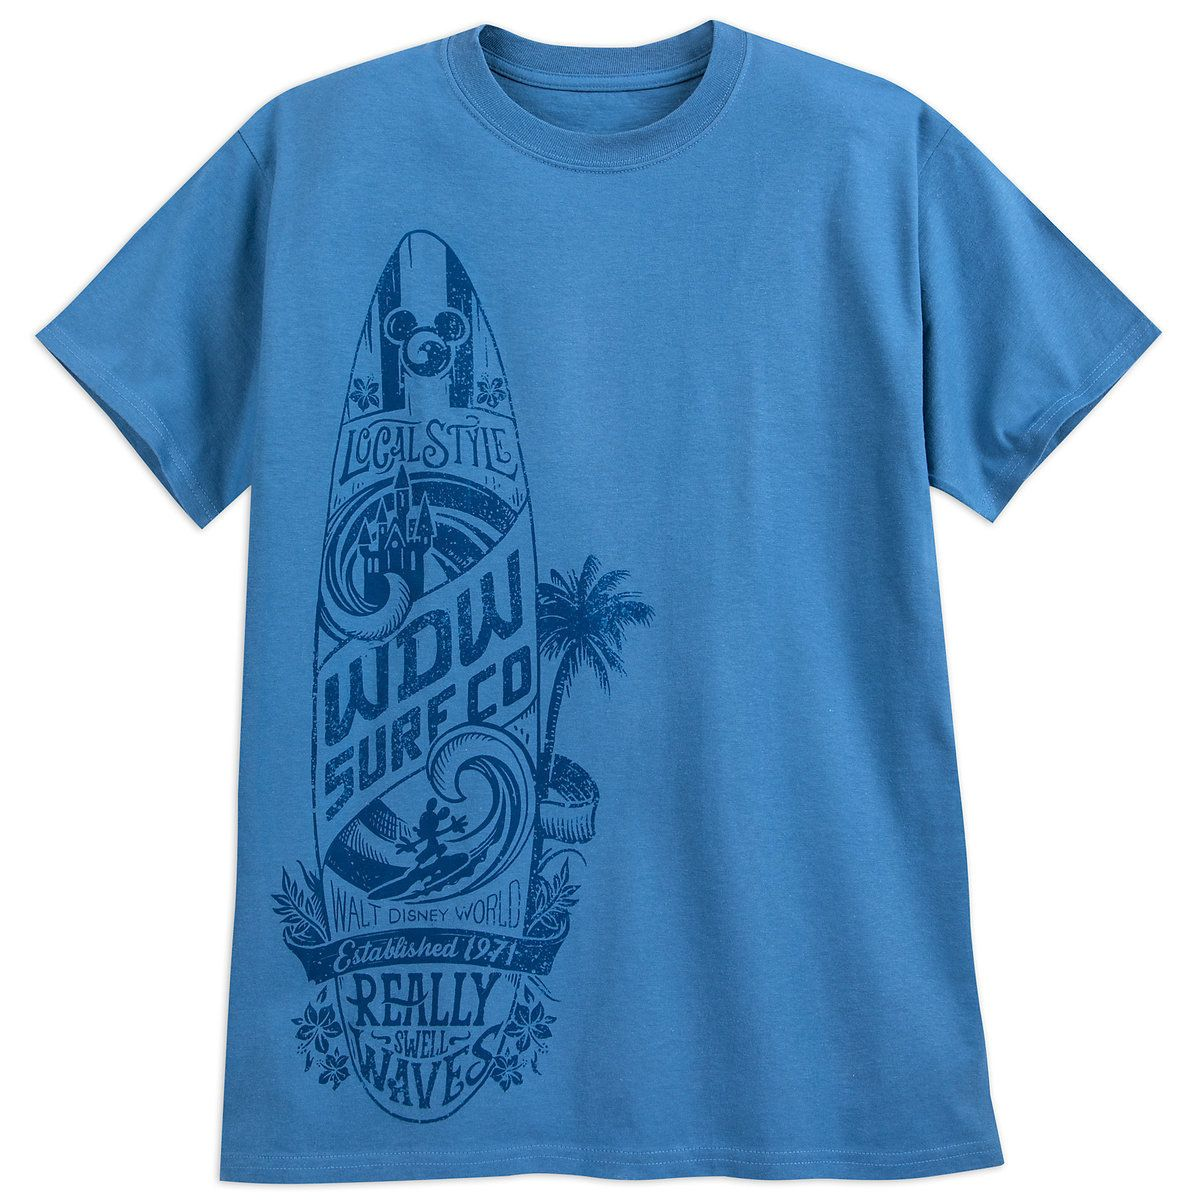 7d6f4098 Product Image of Mickey Mouse ''Surf Co.'' T-Shirt for Adults - Walt Disney  World # 1